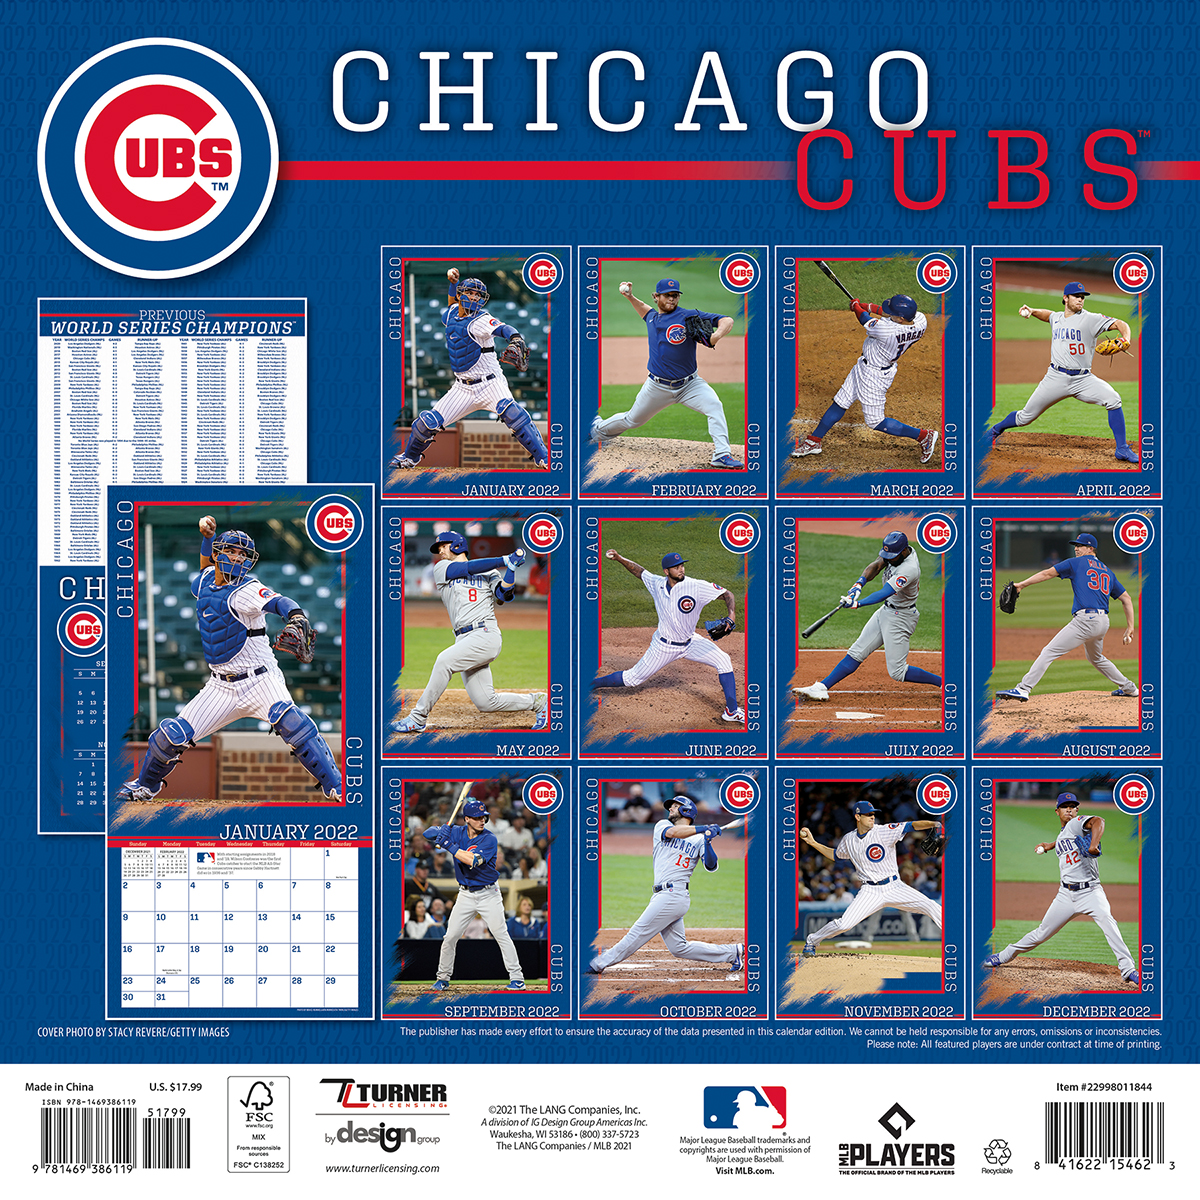 Chicago Cubs 2019 Wall Calendar - Buy at KHC Sports